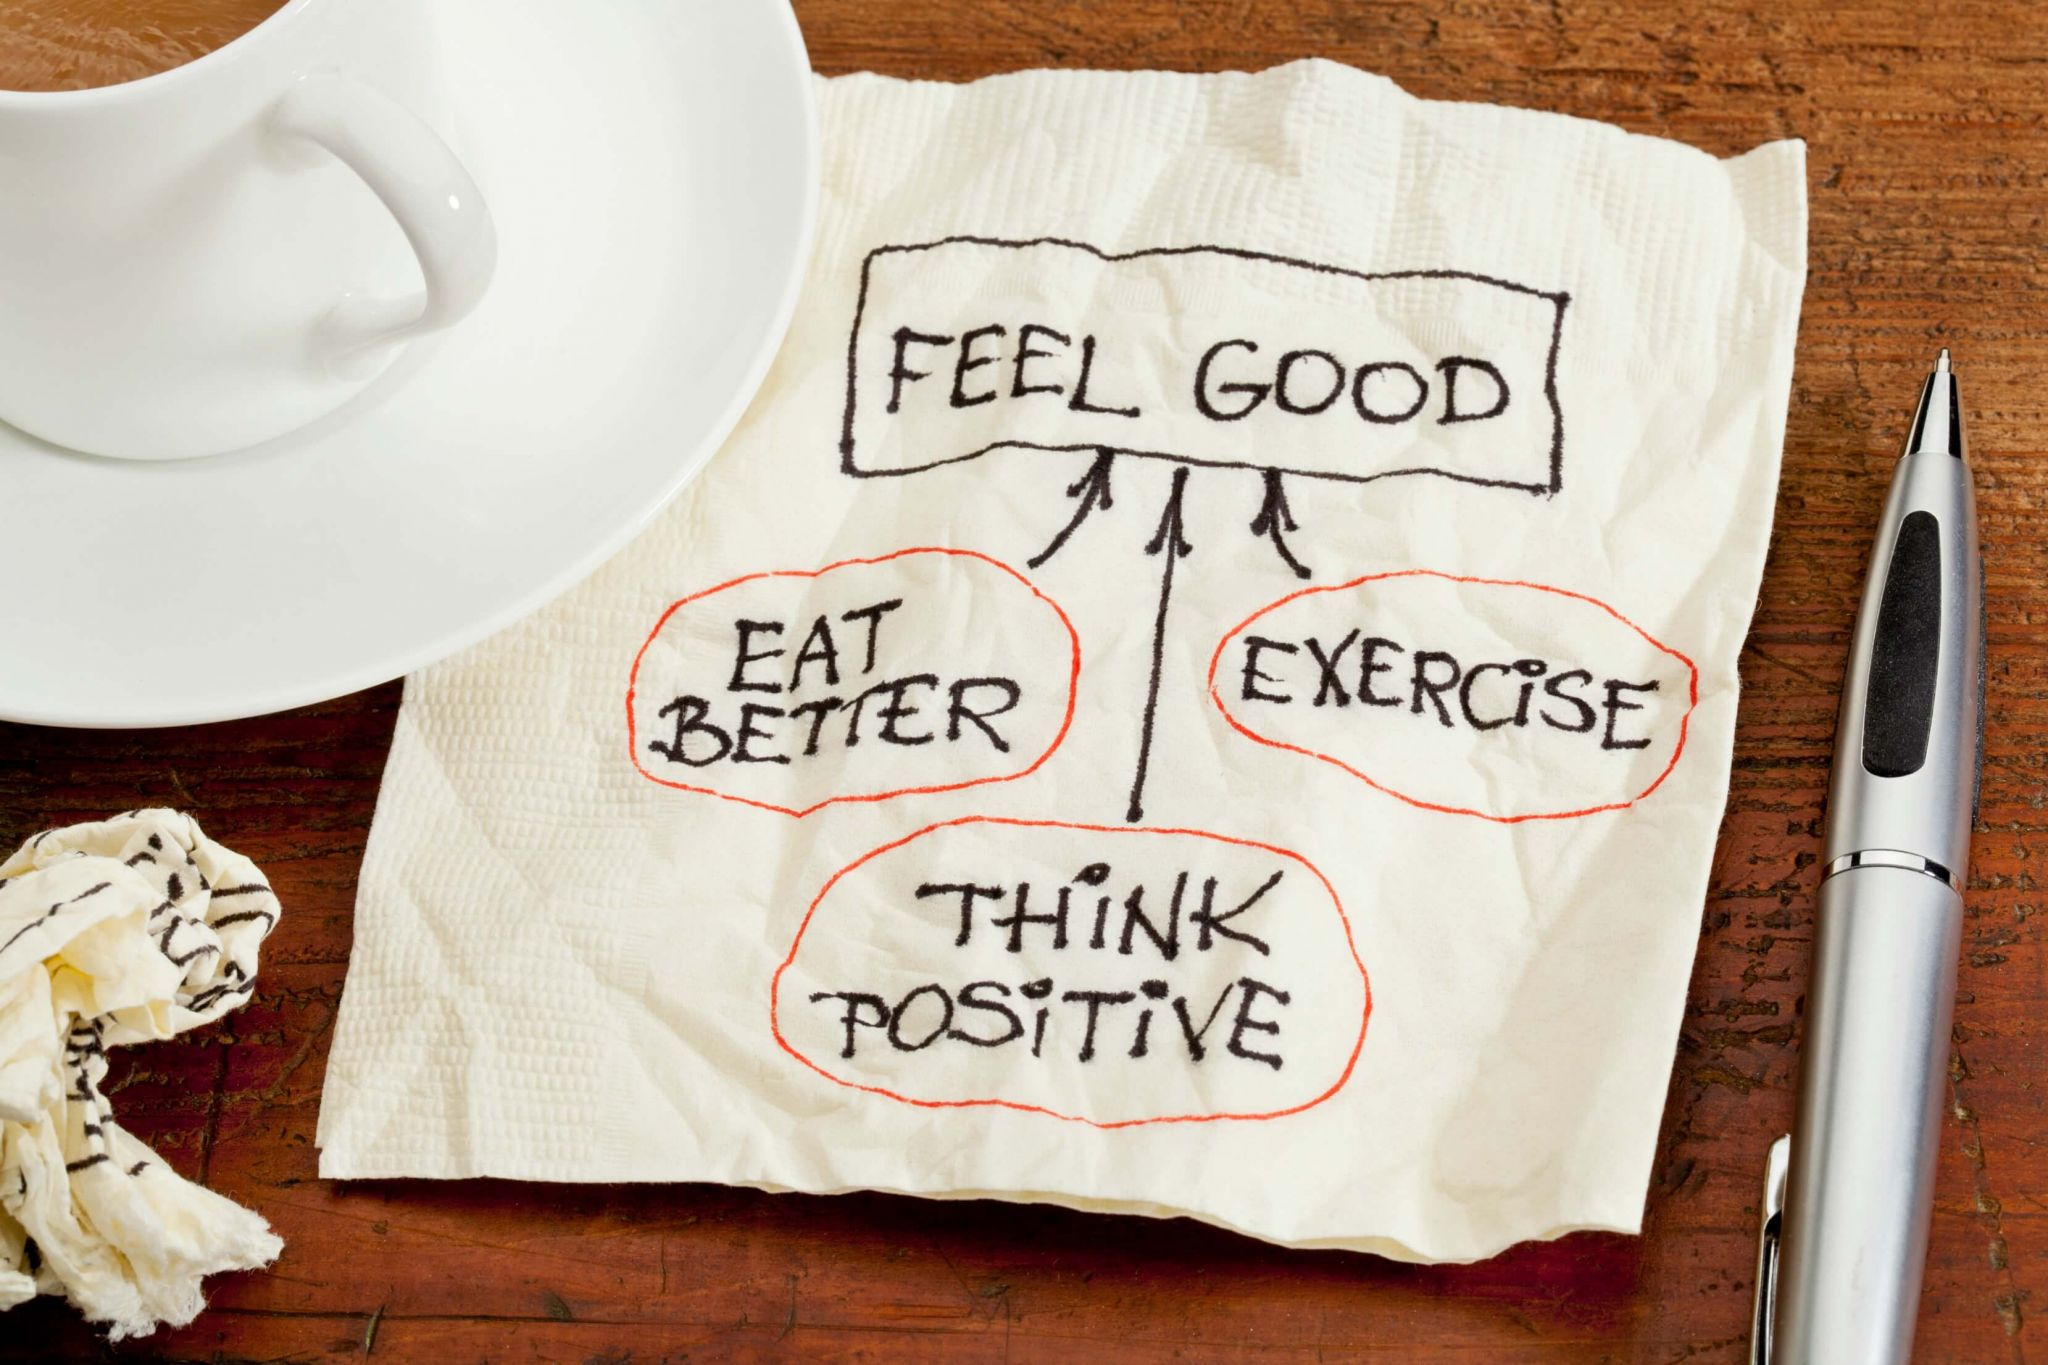 benefits of positive thinking on health - feel good flow chart on a napkin with a cup of coffee